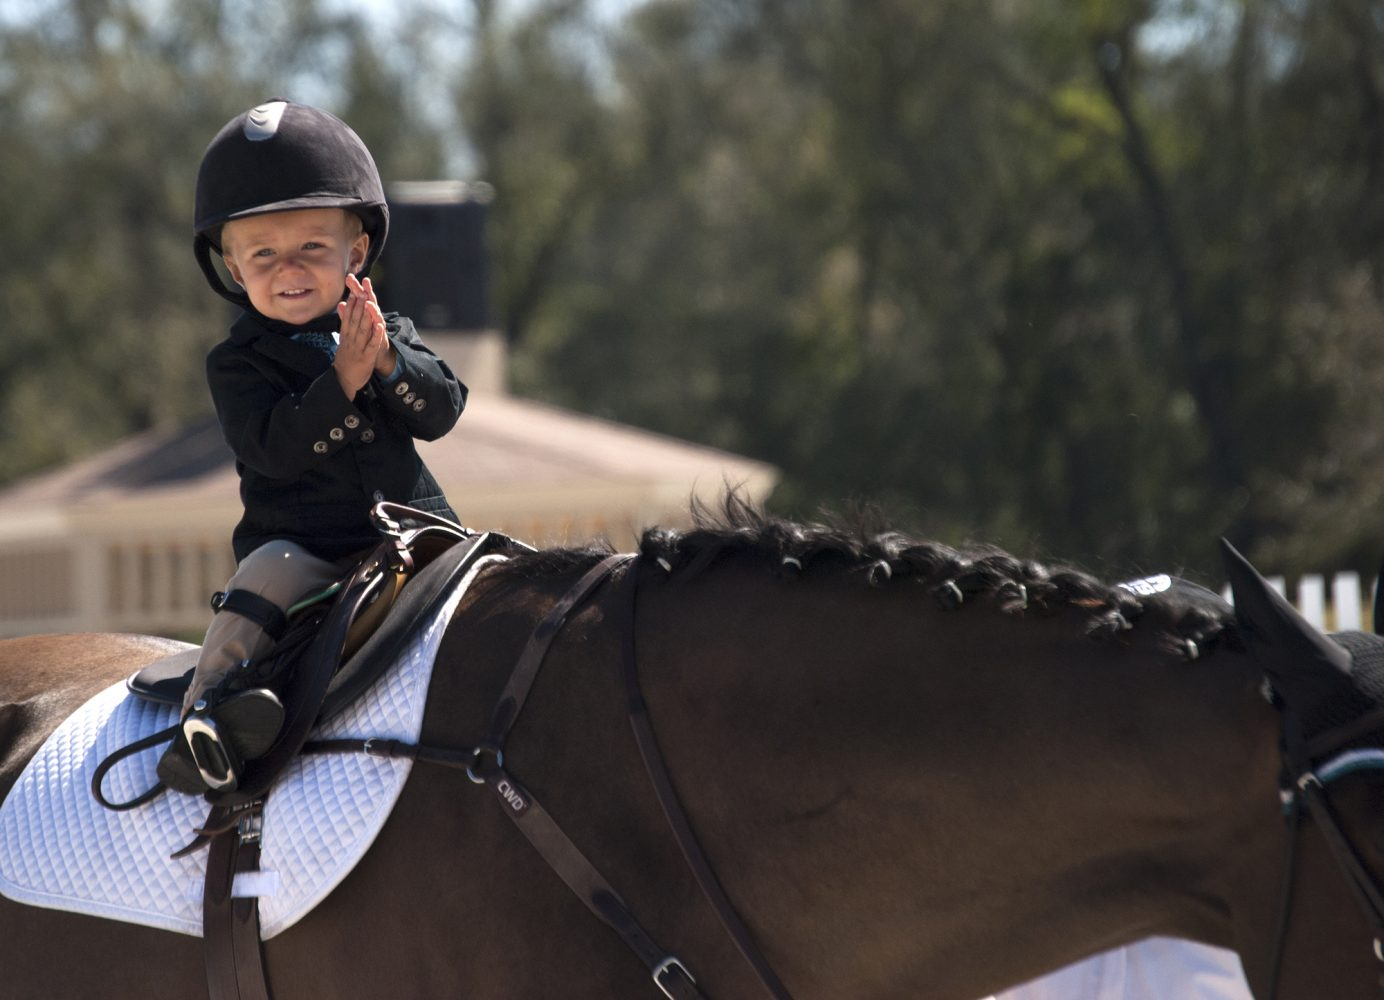 Edward F. Wilson, IV, 21-month-old son of Ocala trainer Kiera Wilson, participates in his first horse show, the Lead Line, during the fifth circuit of HITS in Ocala.